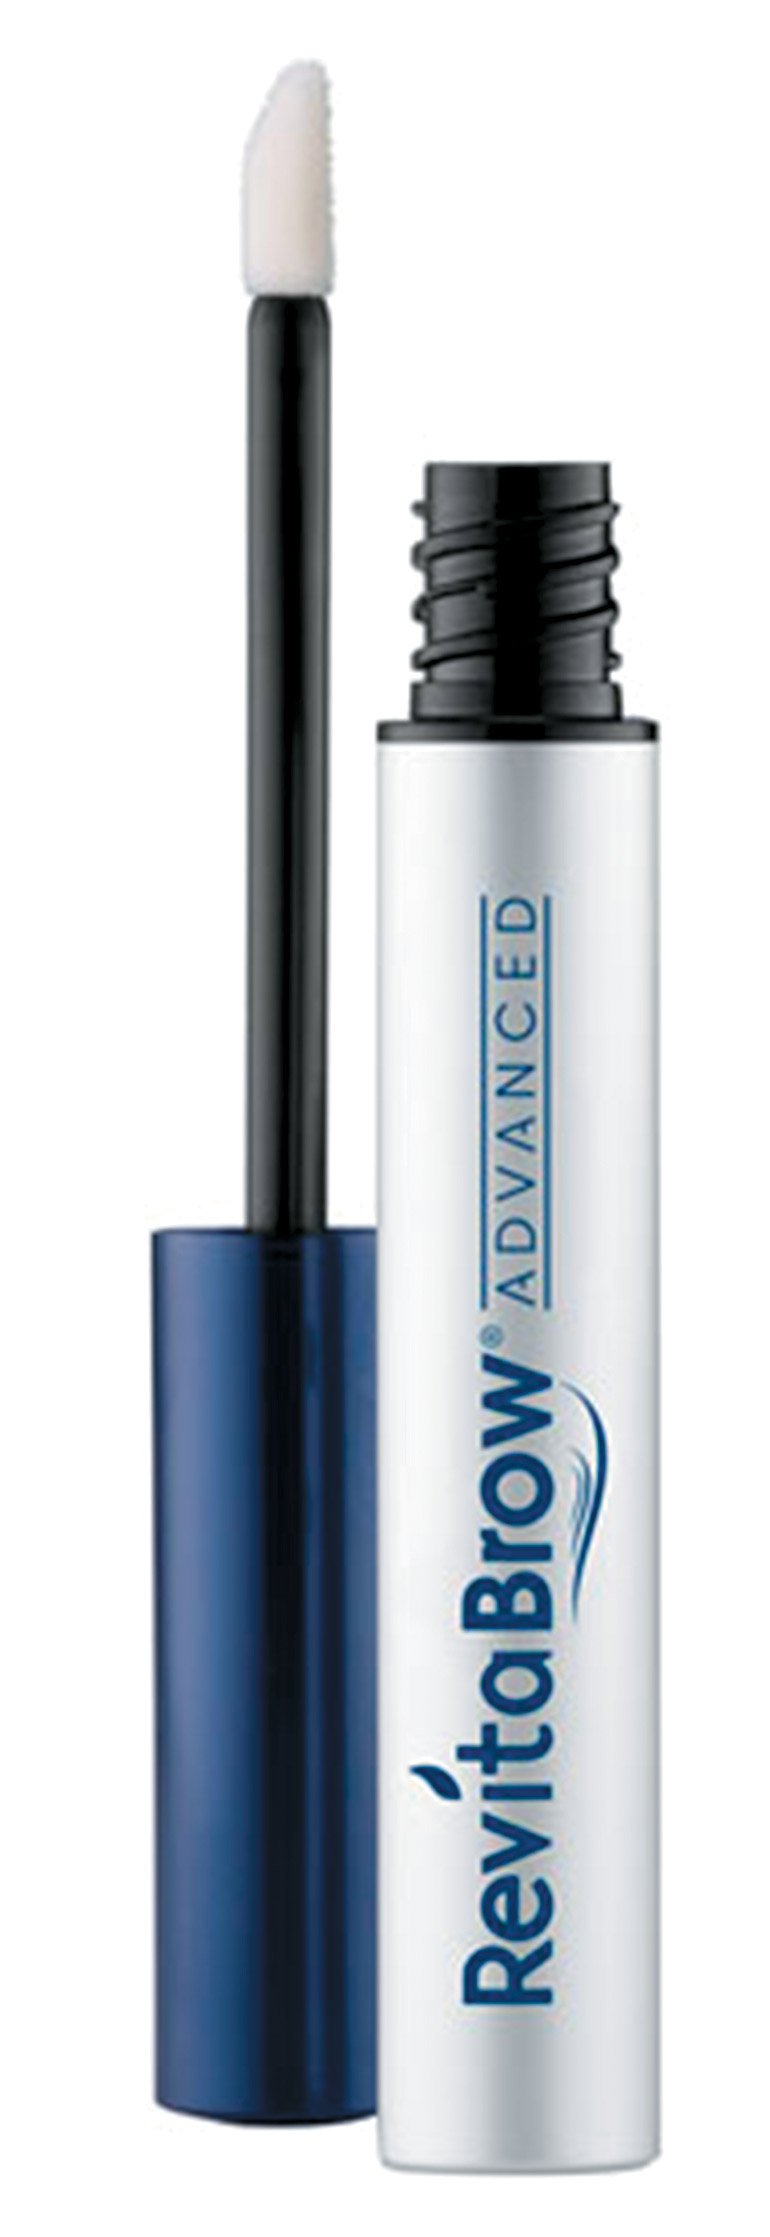 REVITABROW ADVANCED This eyebrow conditioner enhances the beauty of natural eyebrows using proprietary technology. Perfect for keeping eyebrows soft, while protecting from brittleness.